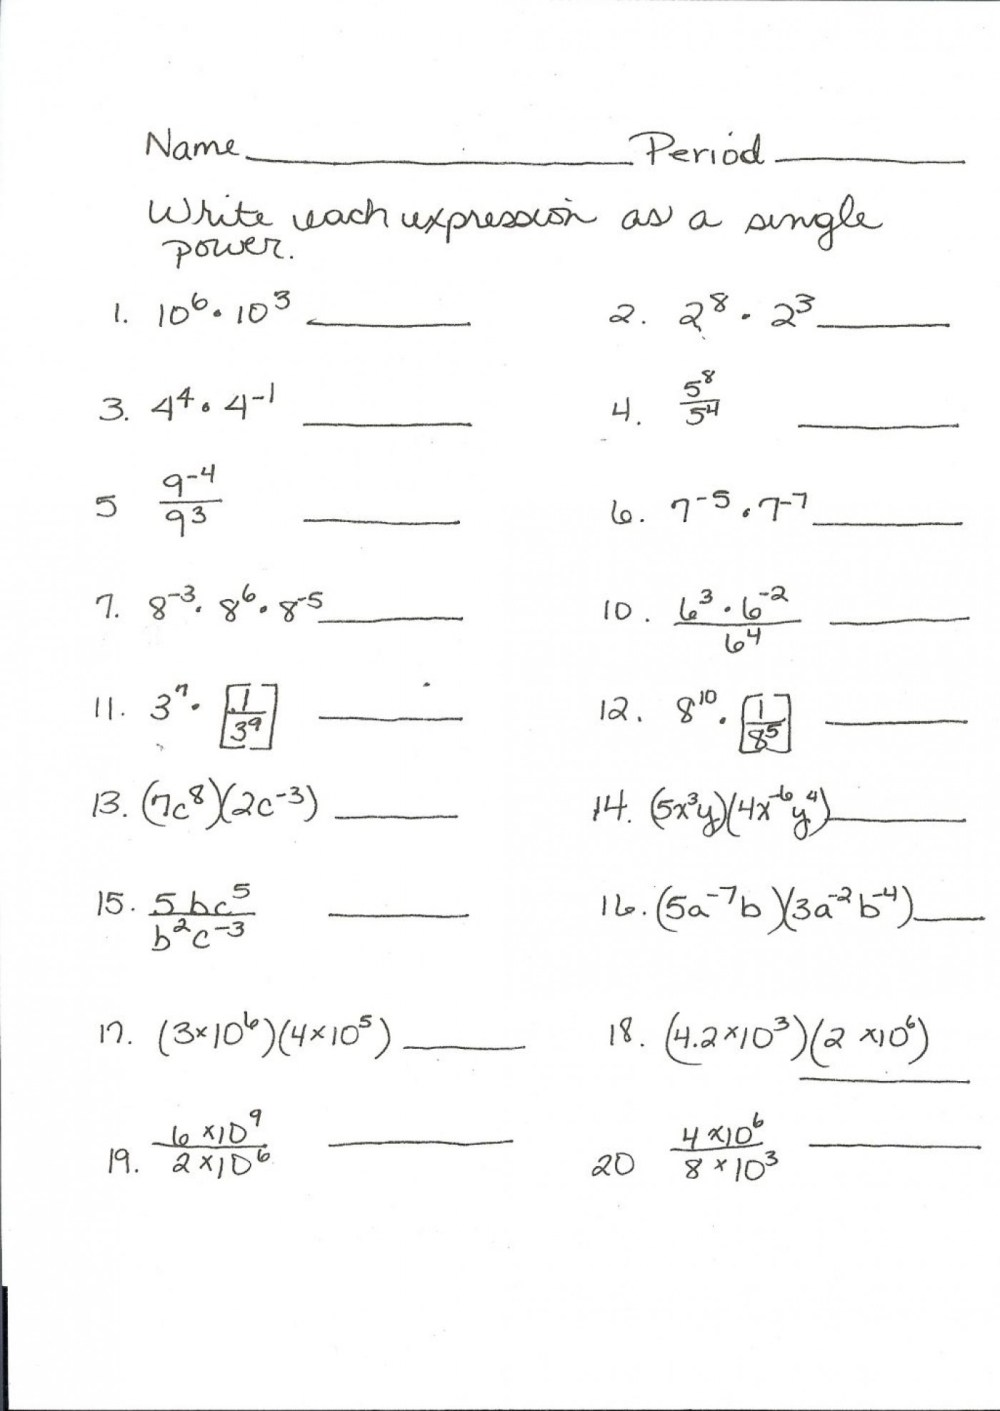 medium resolution of Math Practice Worksheets For 3rd Grade   Printable Worksheets and  Activities for Teachers